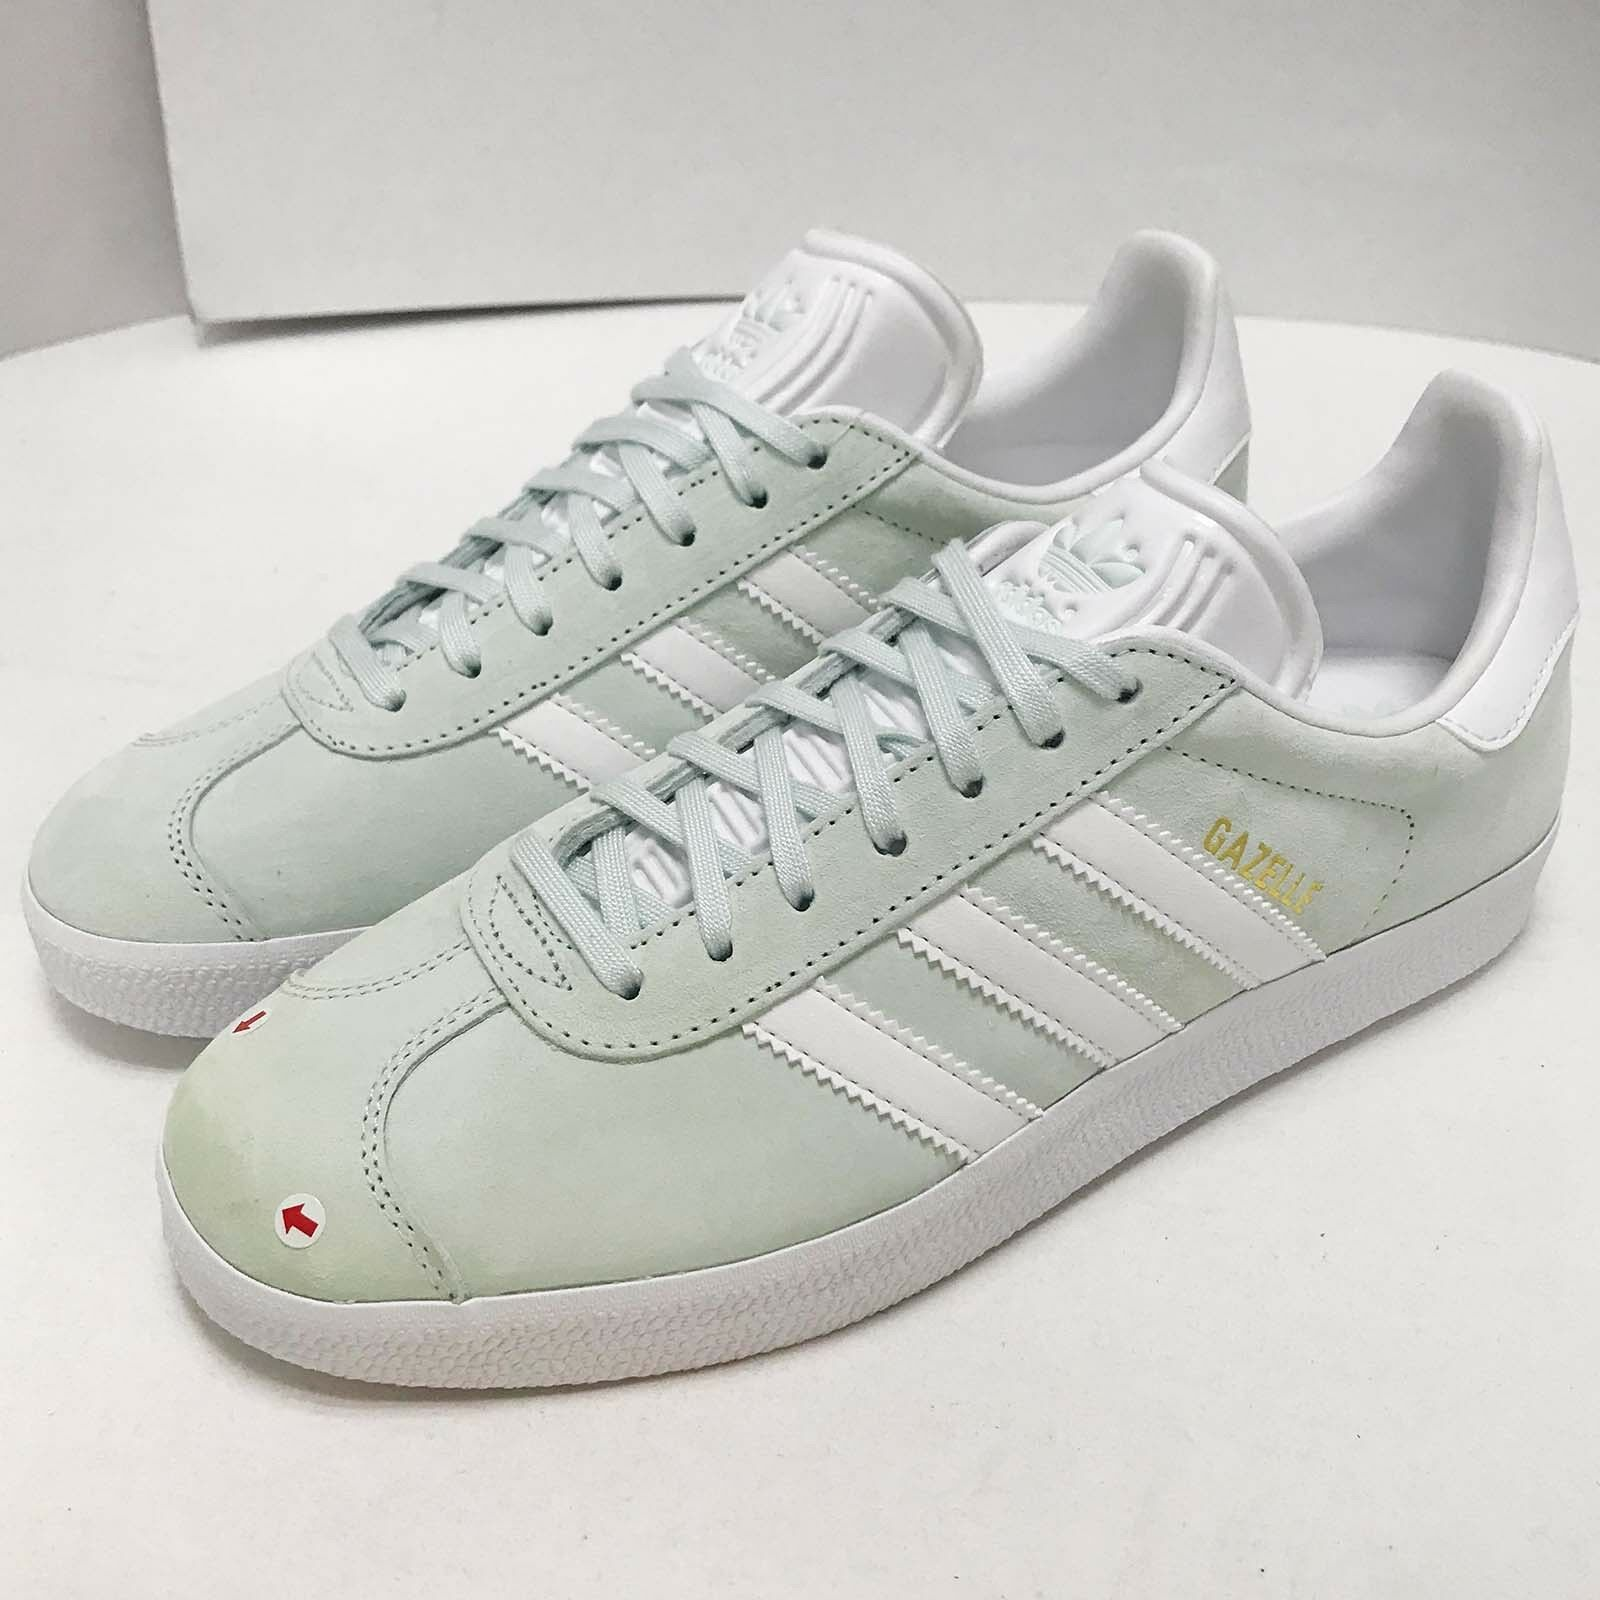 Adidas Originals Gazelle W Left Foot With Discoloration Women shoes BA9599